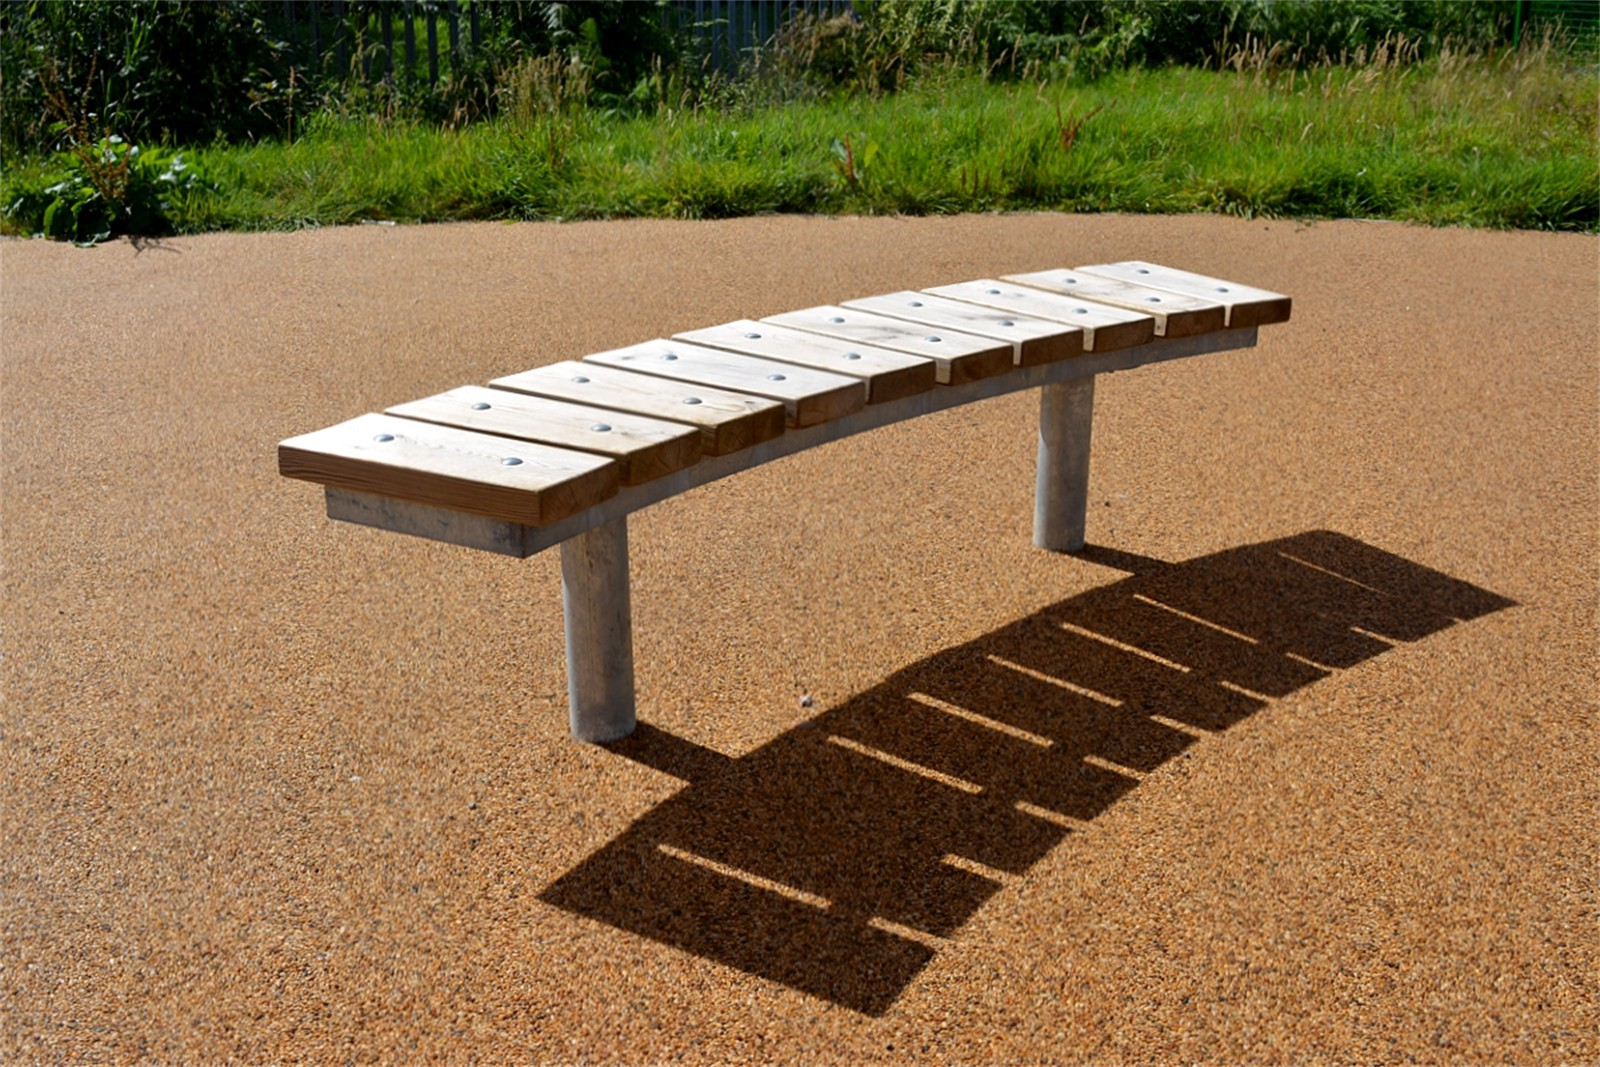 62ssp16 - Spalding curved bench